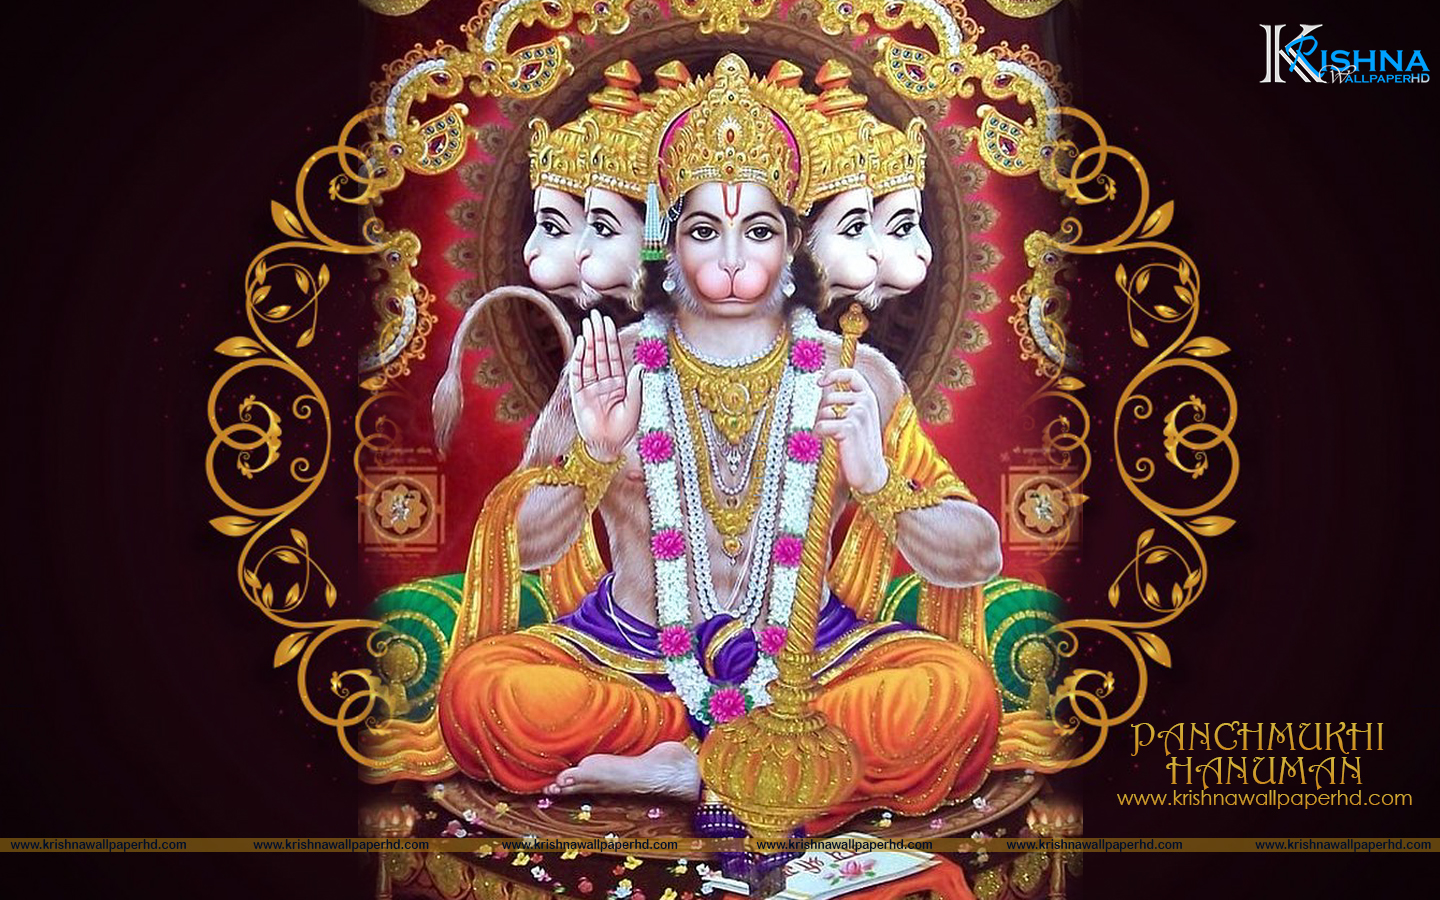 HD Panchmukhi Hanuman Wallpaper